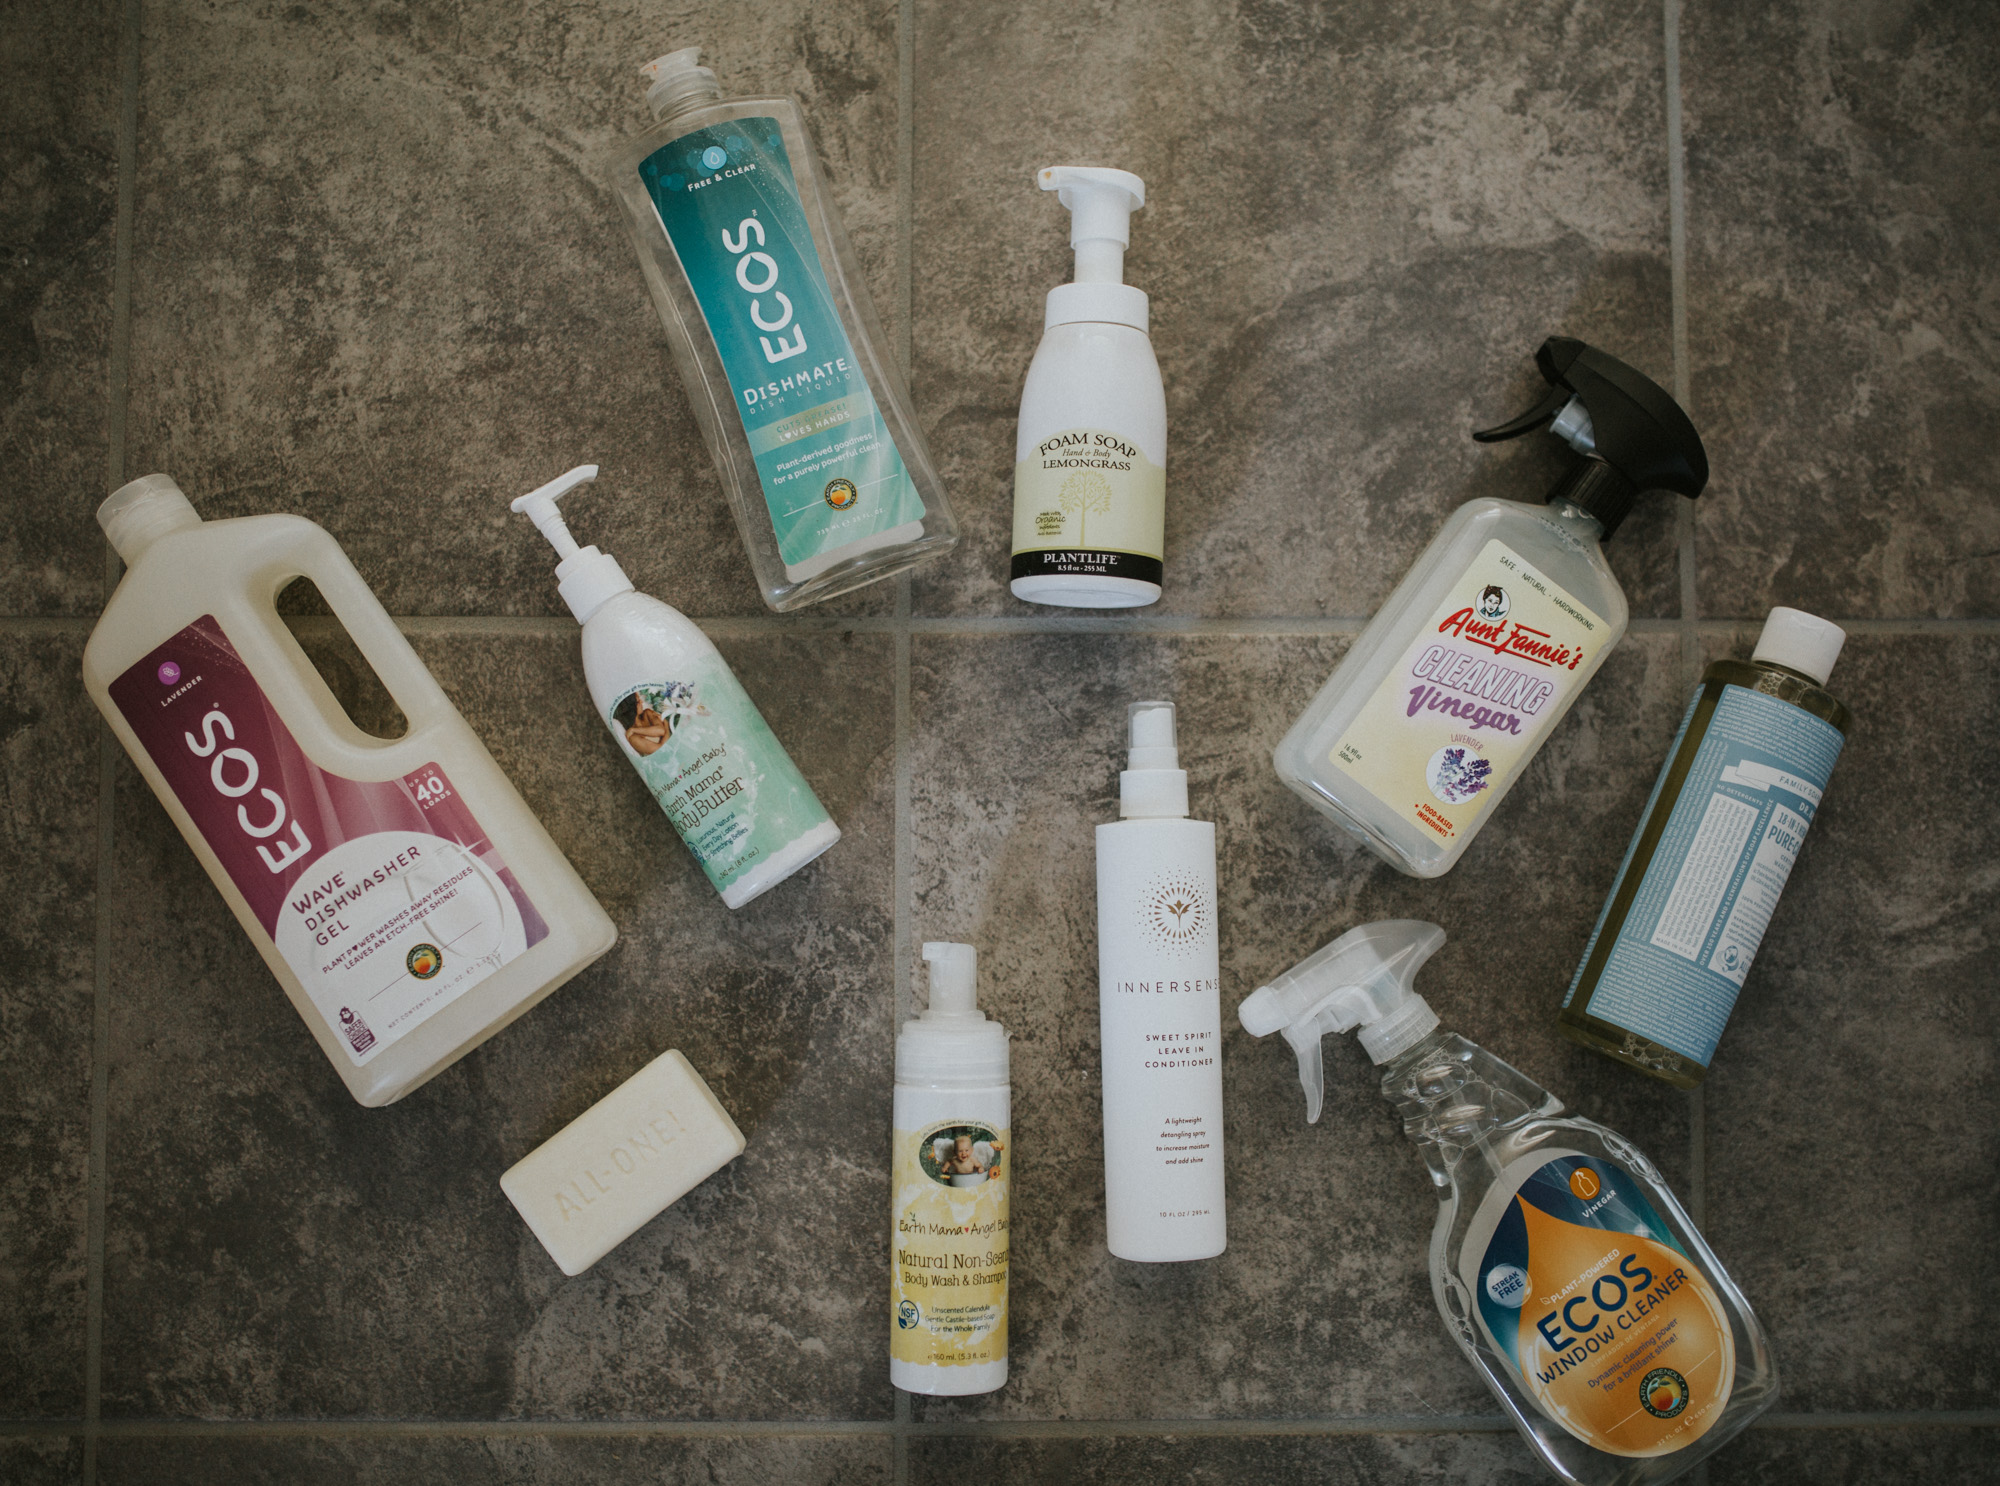 Cruelty-free Brands | Brands I Use and Love That Don't Test on Animals